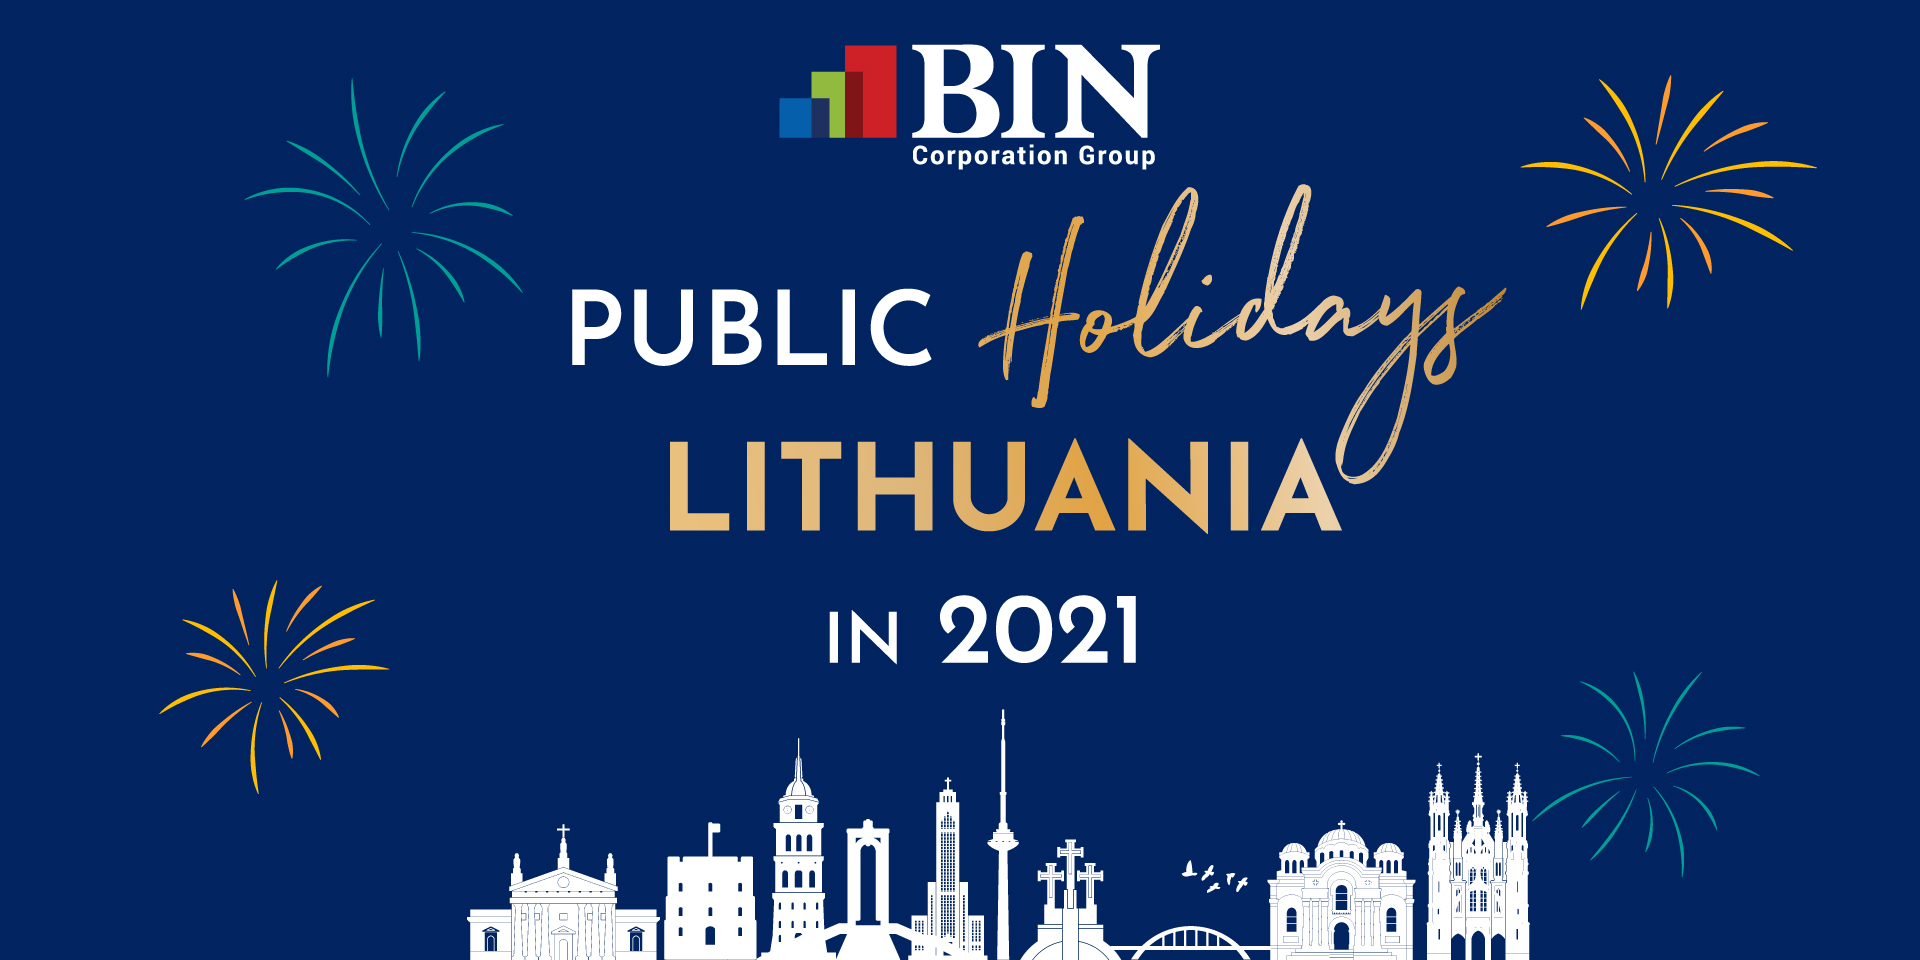 Lithuania Public Holiday in 2021